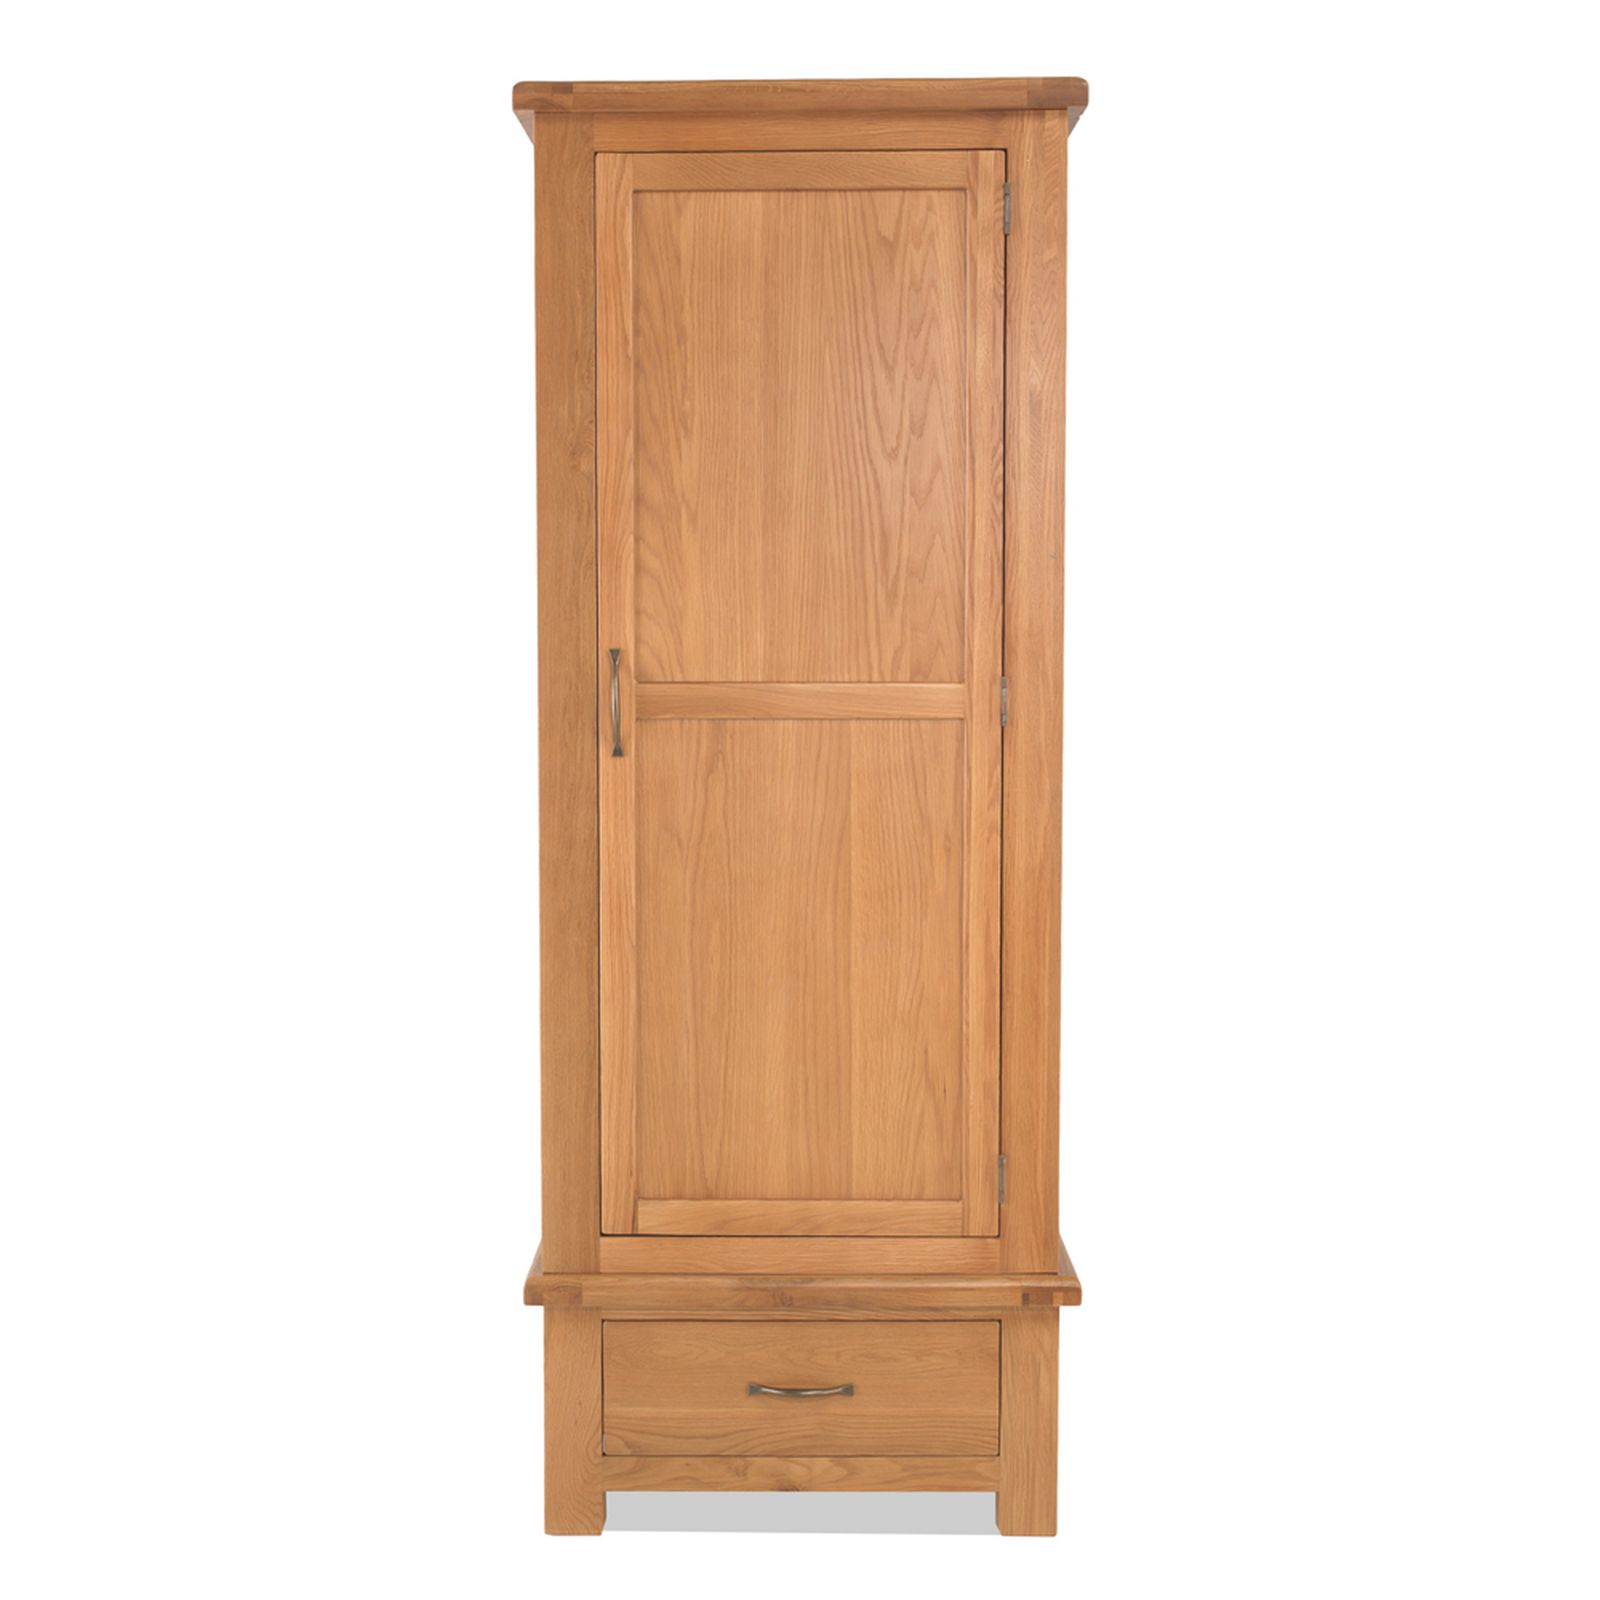 Galway solid oak bedroom furniture single wardrobe with for Solid oak furniture